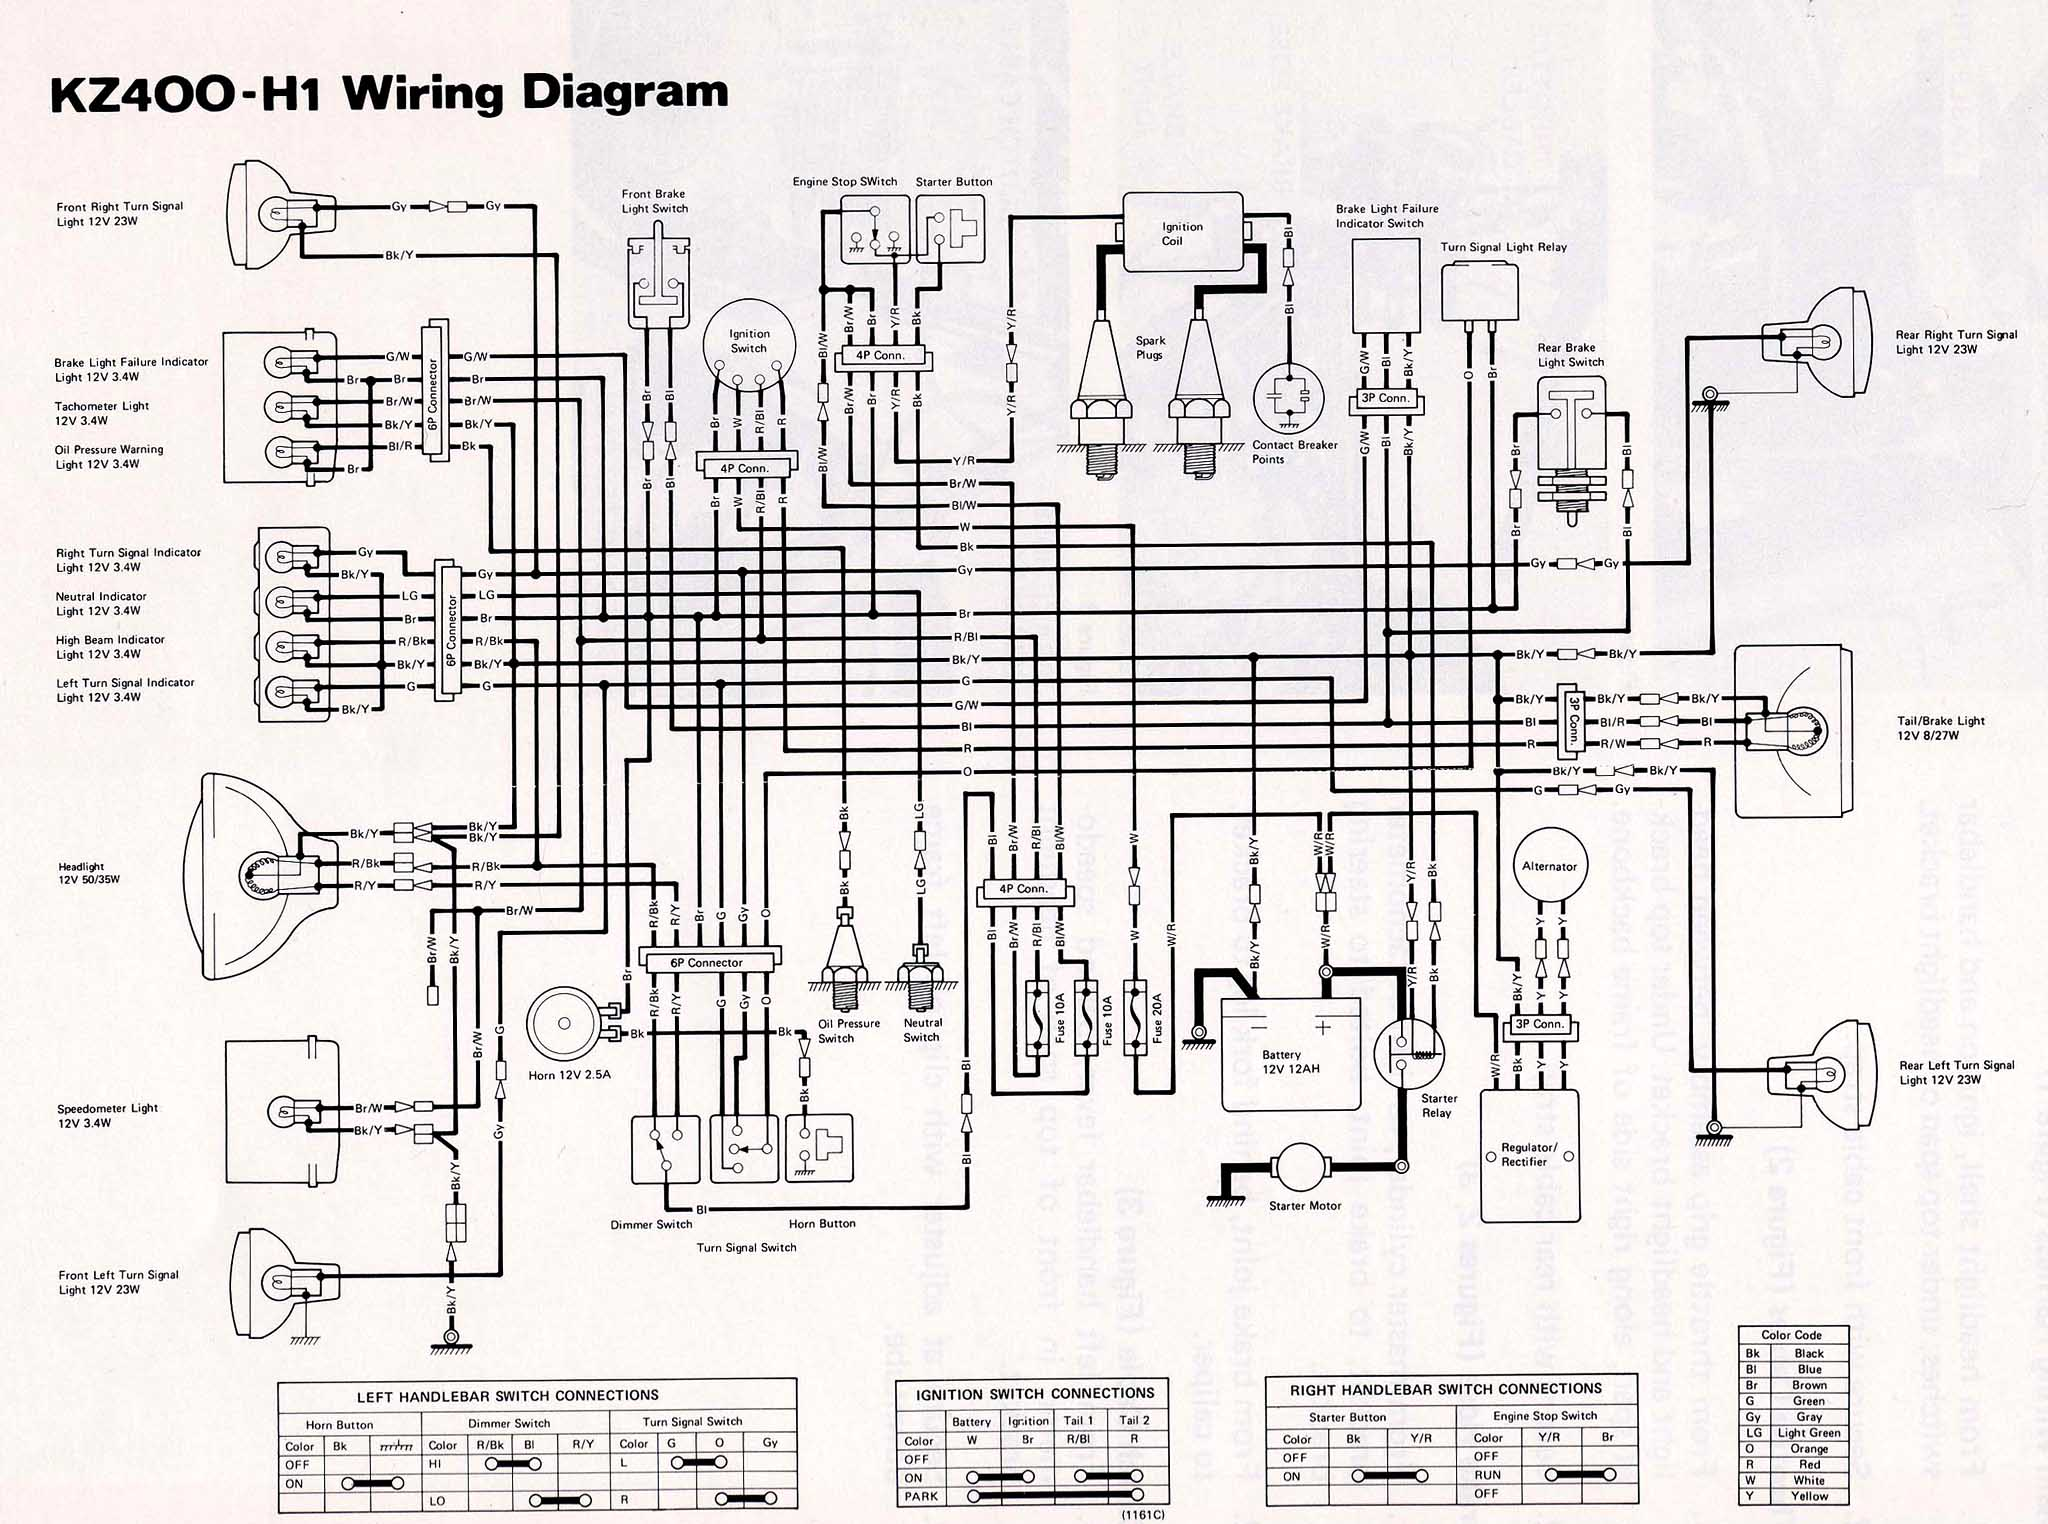 kz400 wiring diagram 1980 auto electrical wiring diagram u2022 rh 6weeks co uk